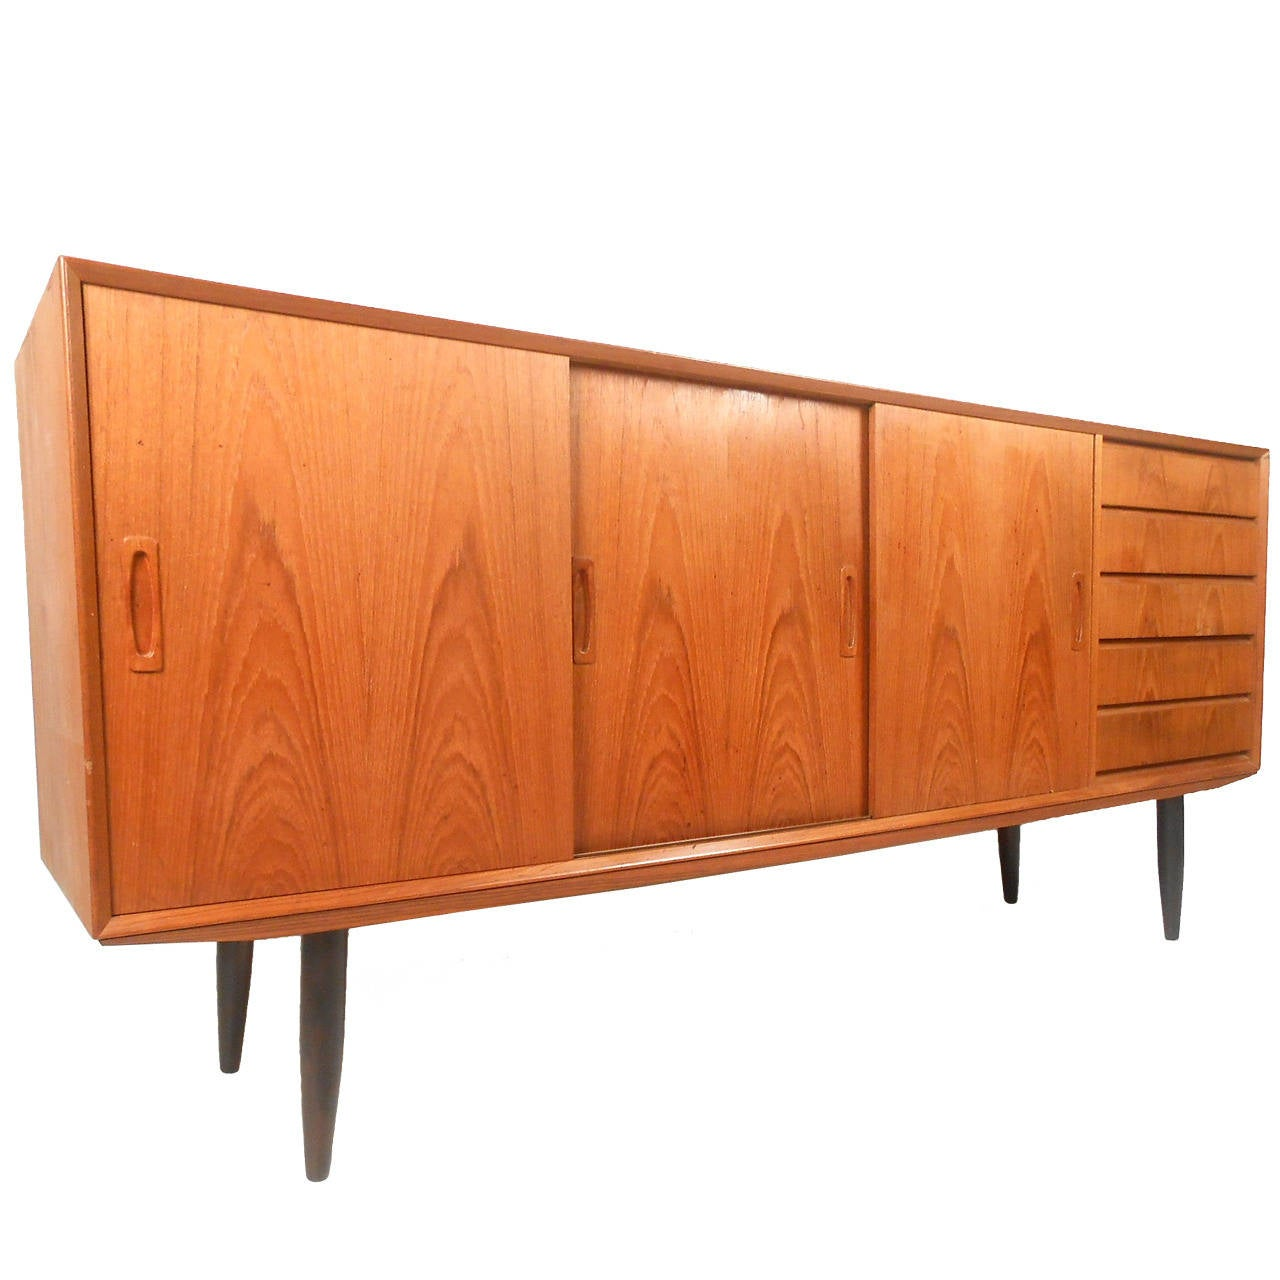 gorgeous mid century modern danish teak sideboard for sale at 1stdibs. Black Bedroom Furniture Sets. Home Design Ideas